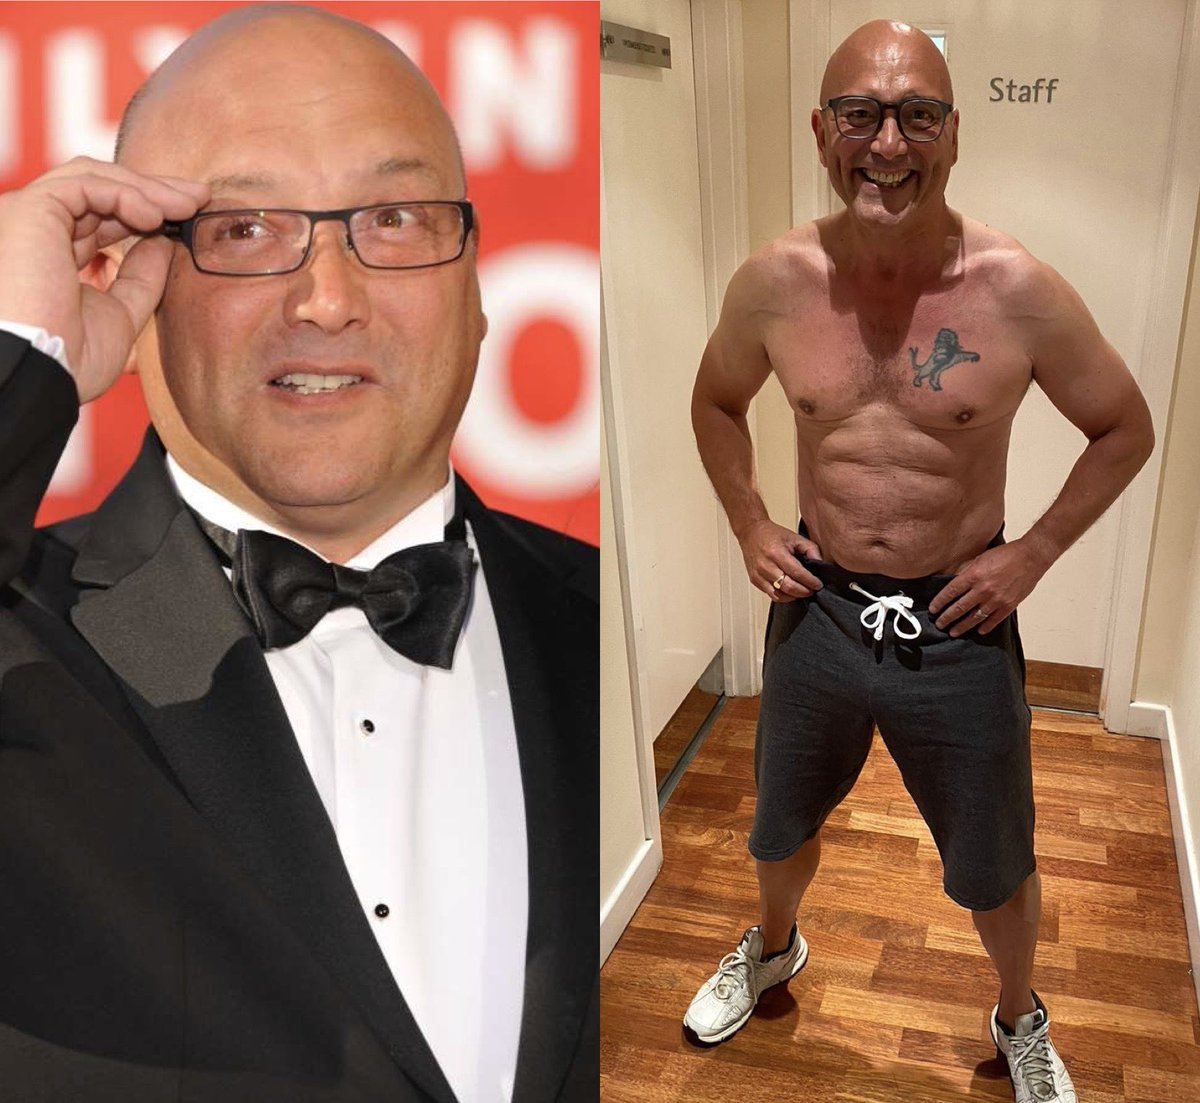 💚THE CRAZIEST OF RESULTS!!💚 ⠀ ⠀ Crazy but not unrealistic! If Gregg can do it, you can do it too! Gregg created https://t.co/HEVO2KUOO8 to show you exactly how he managed it! Sign up today!💚💚💚 ⠀ ⠀ #ShowMeFit⠀ #greggwallace #exercise #workout #weightloss #transformation https://t.co/DkP0q7lxrG